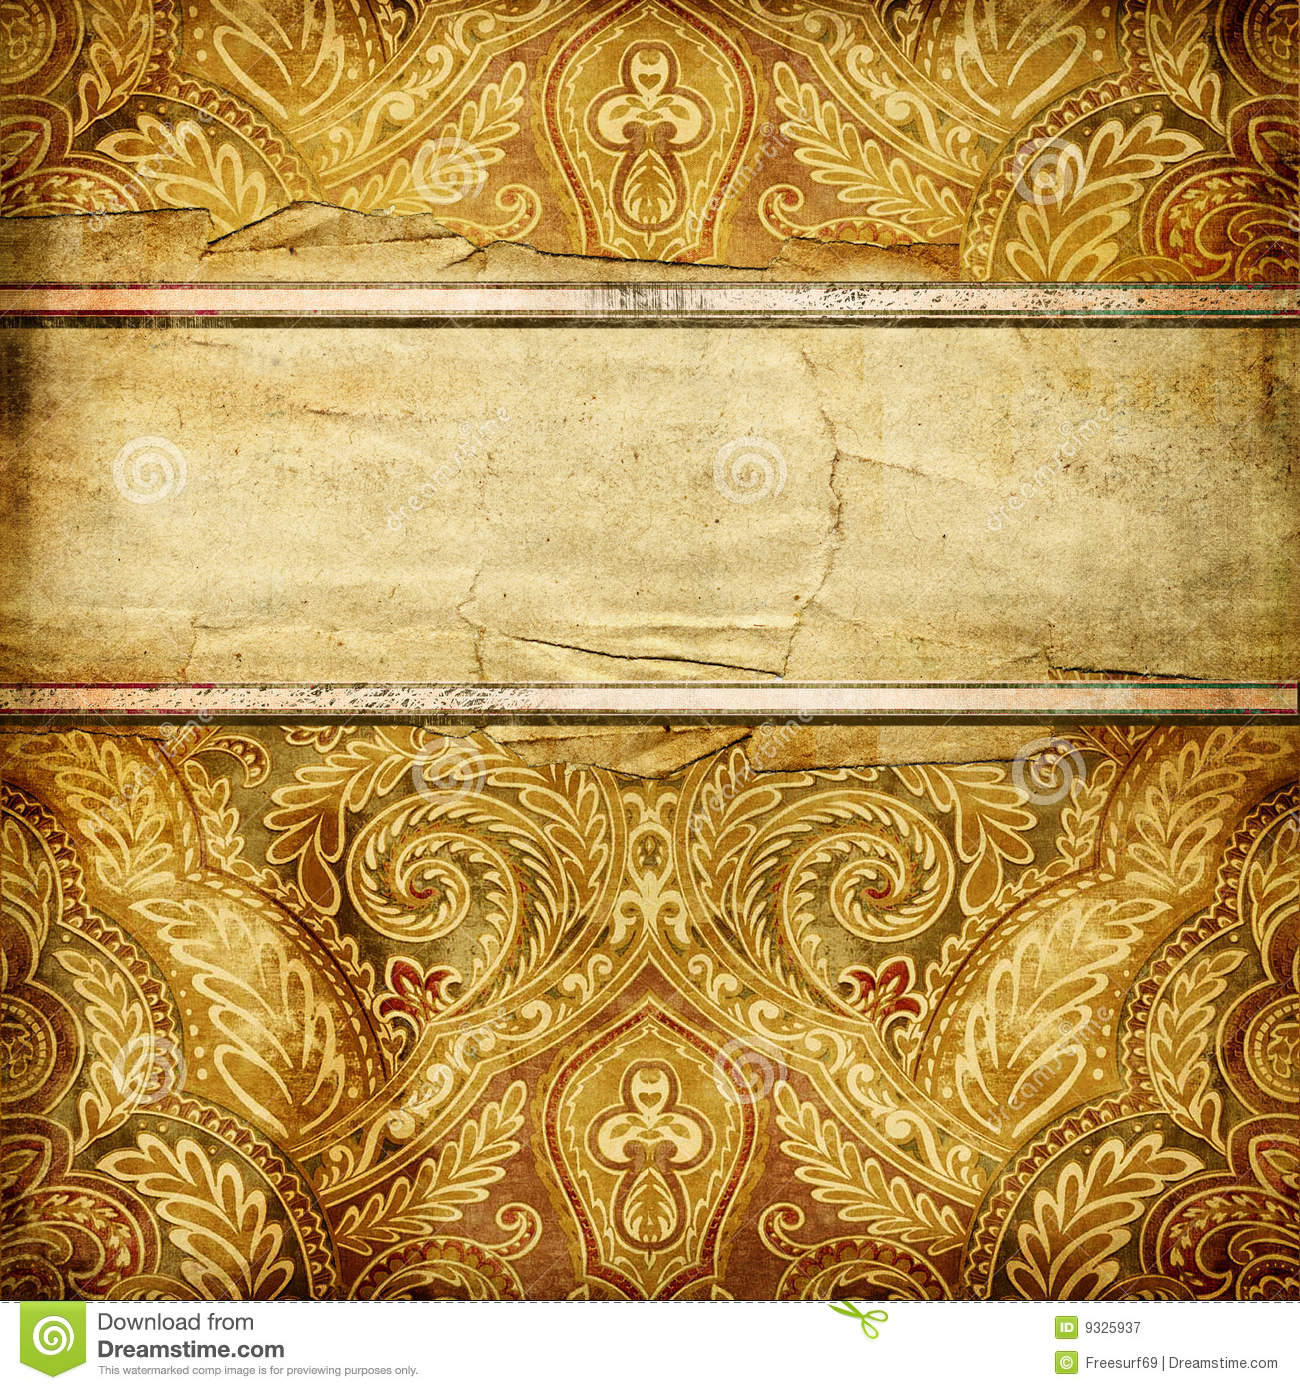 Decorative paper royalty free stock photography image for Decorative paper